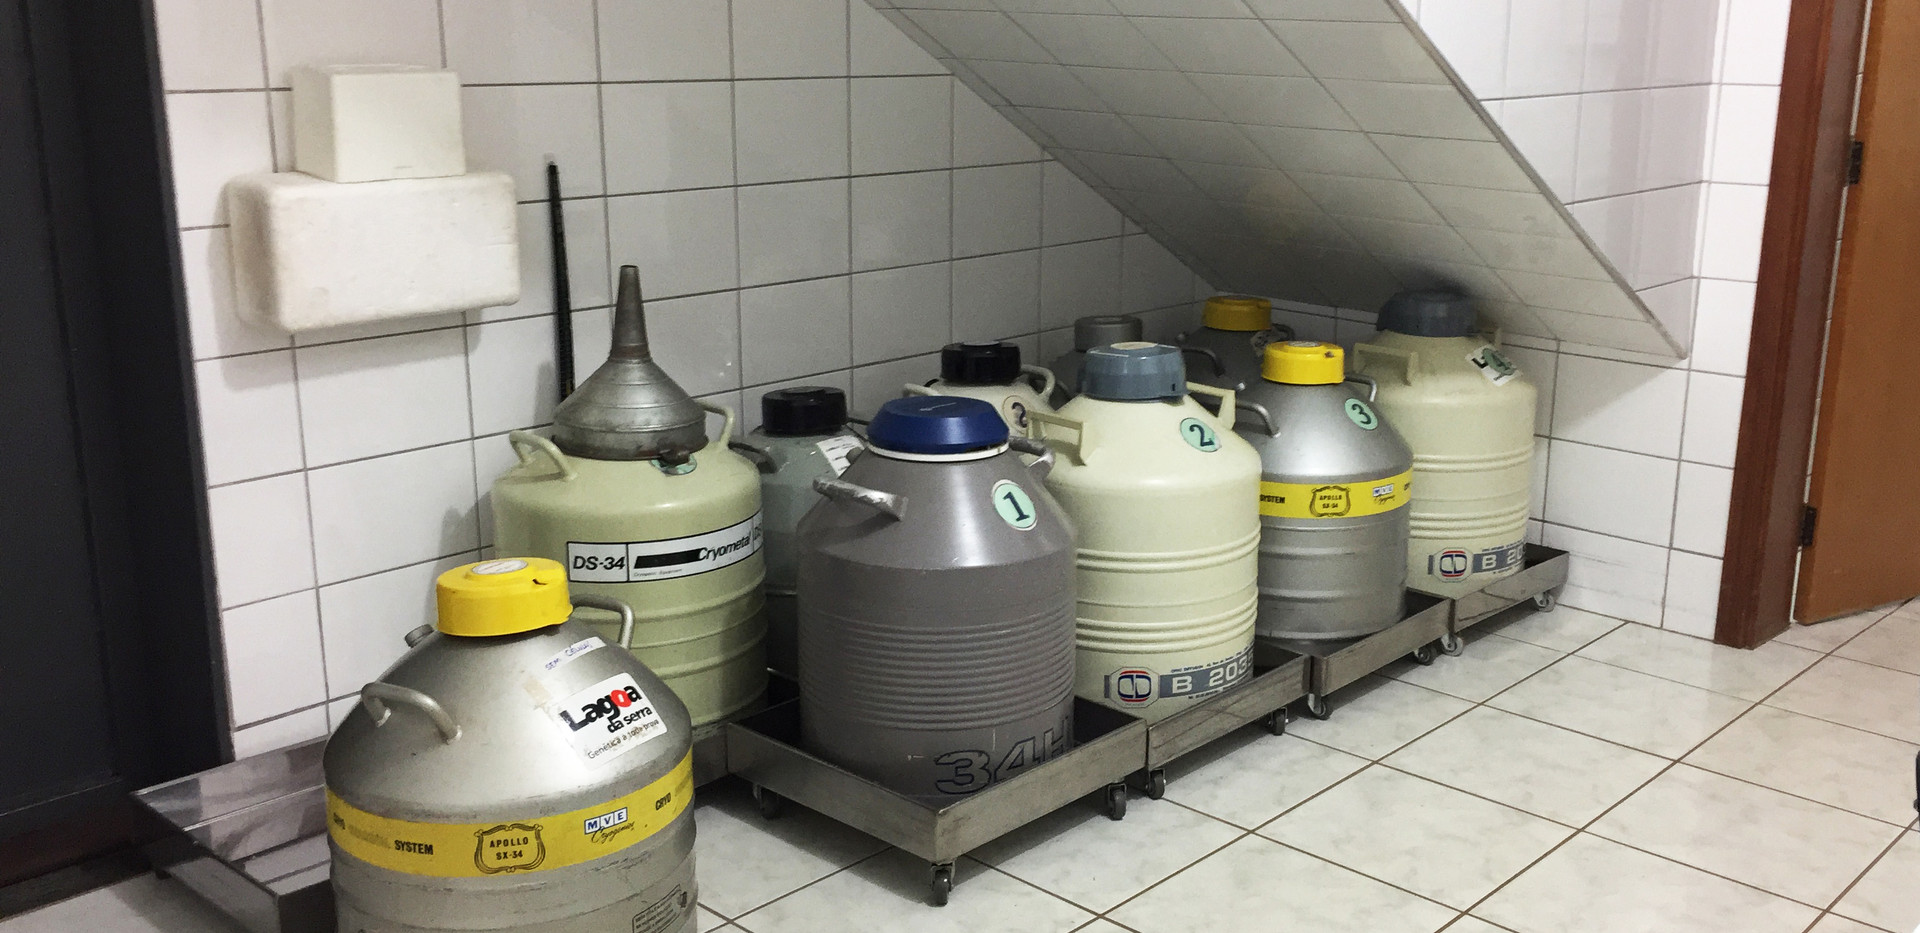 Room of cryopreserved